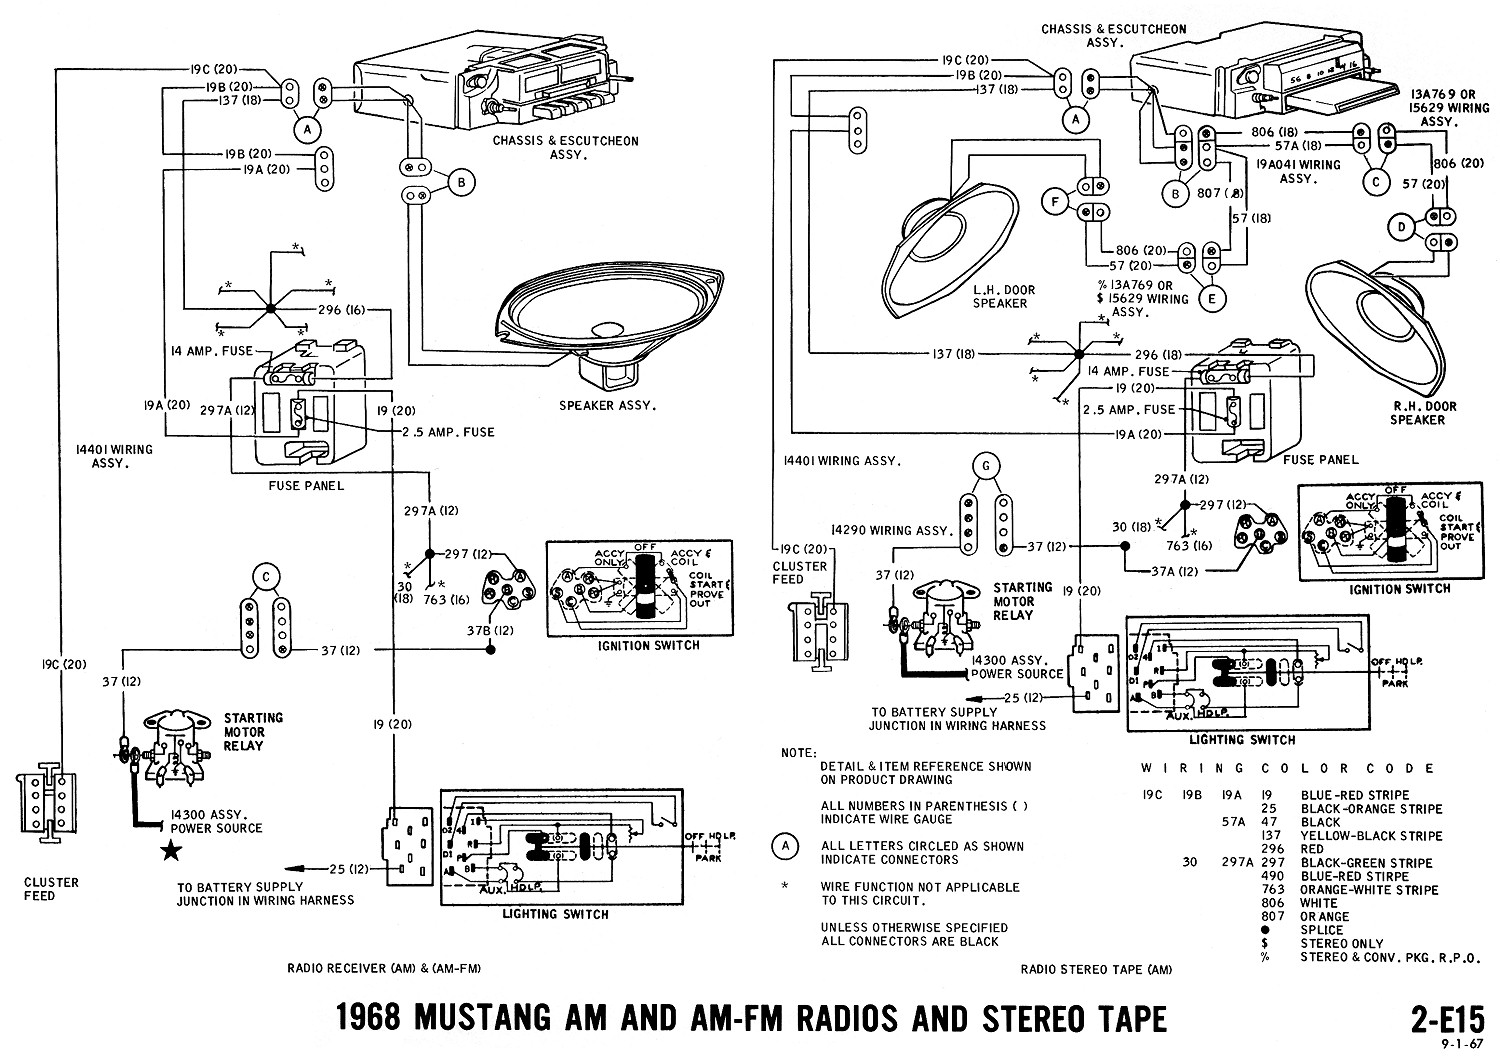 hino 268 fuse panel | wiring diagram database hino headlight wiring diagram hino ignition wiring diagram